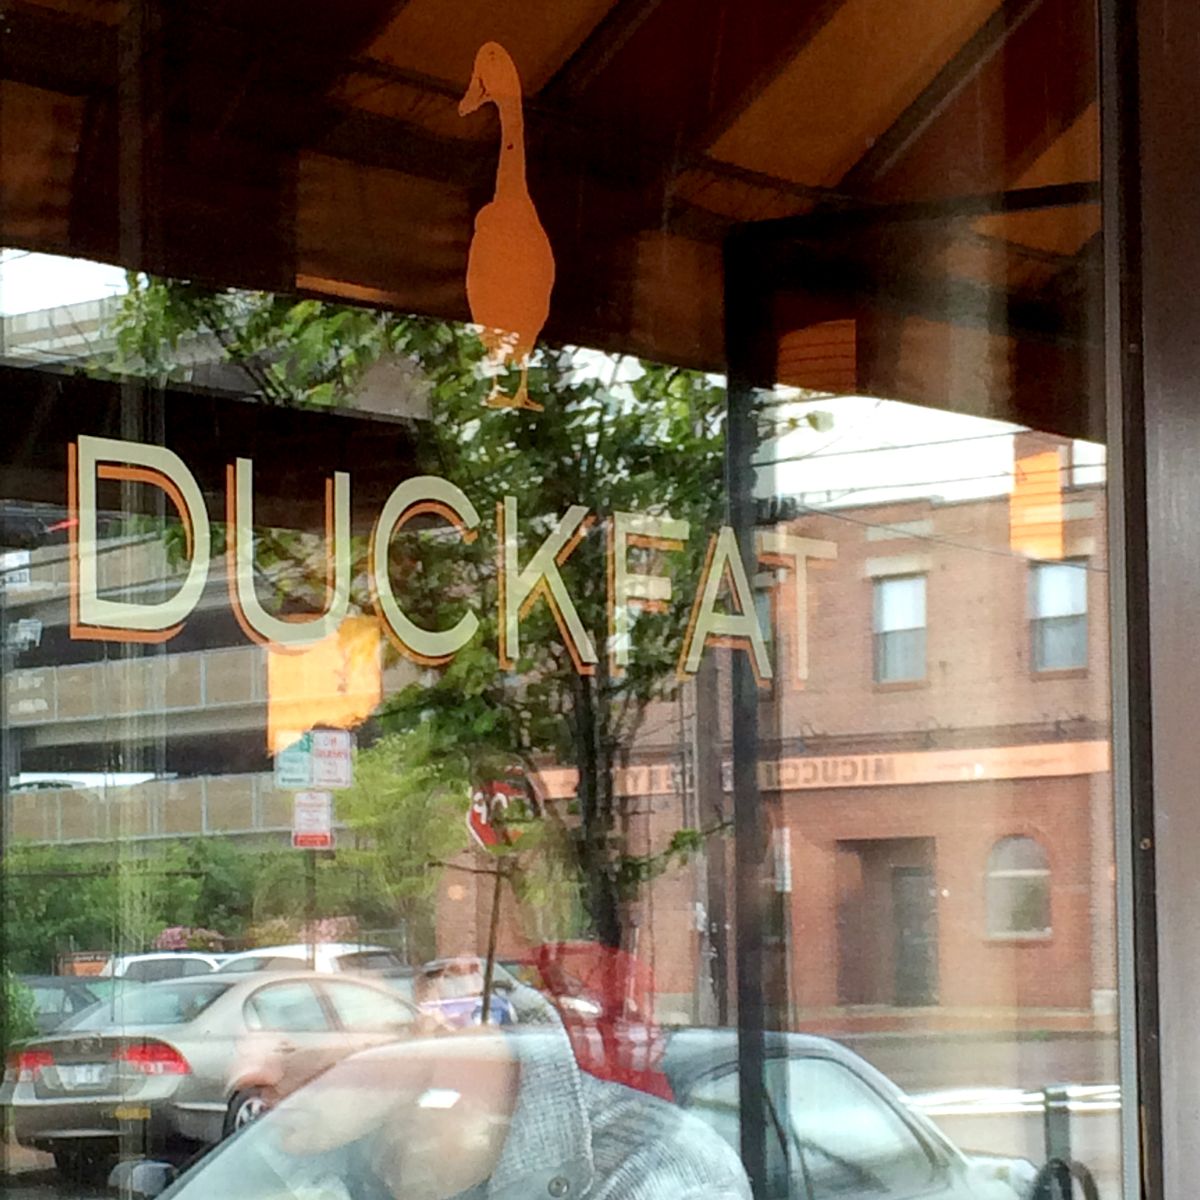 chicago travel blog duckfat portland maine 2